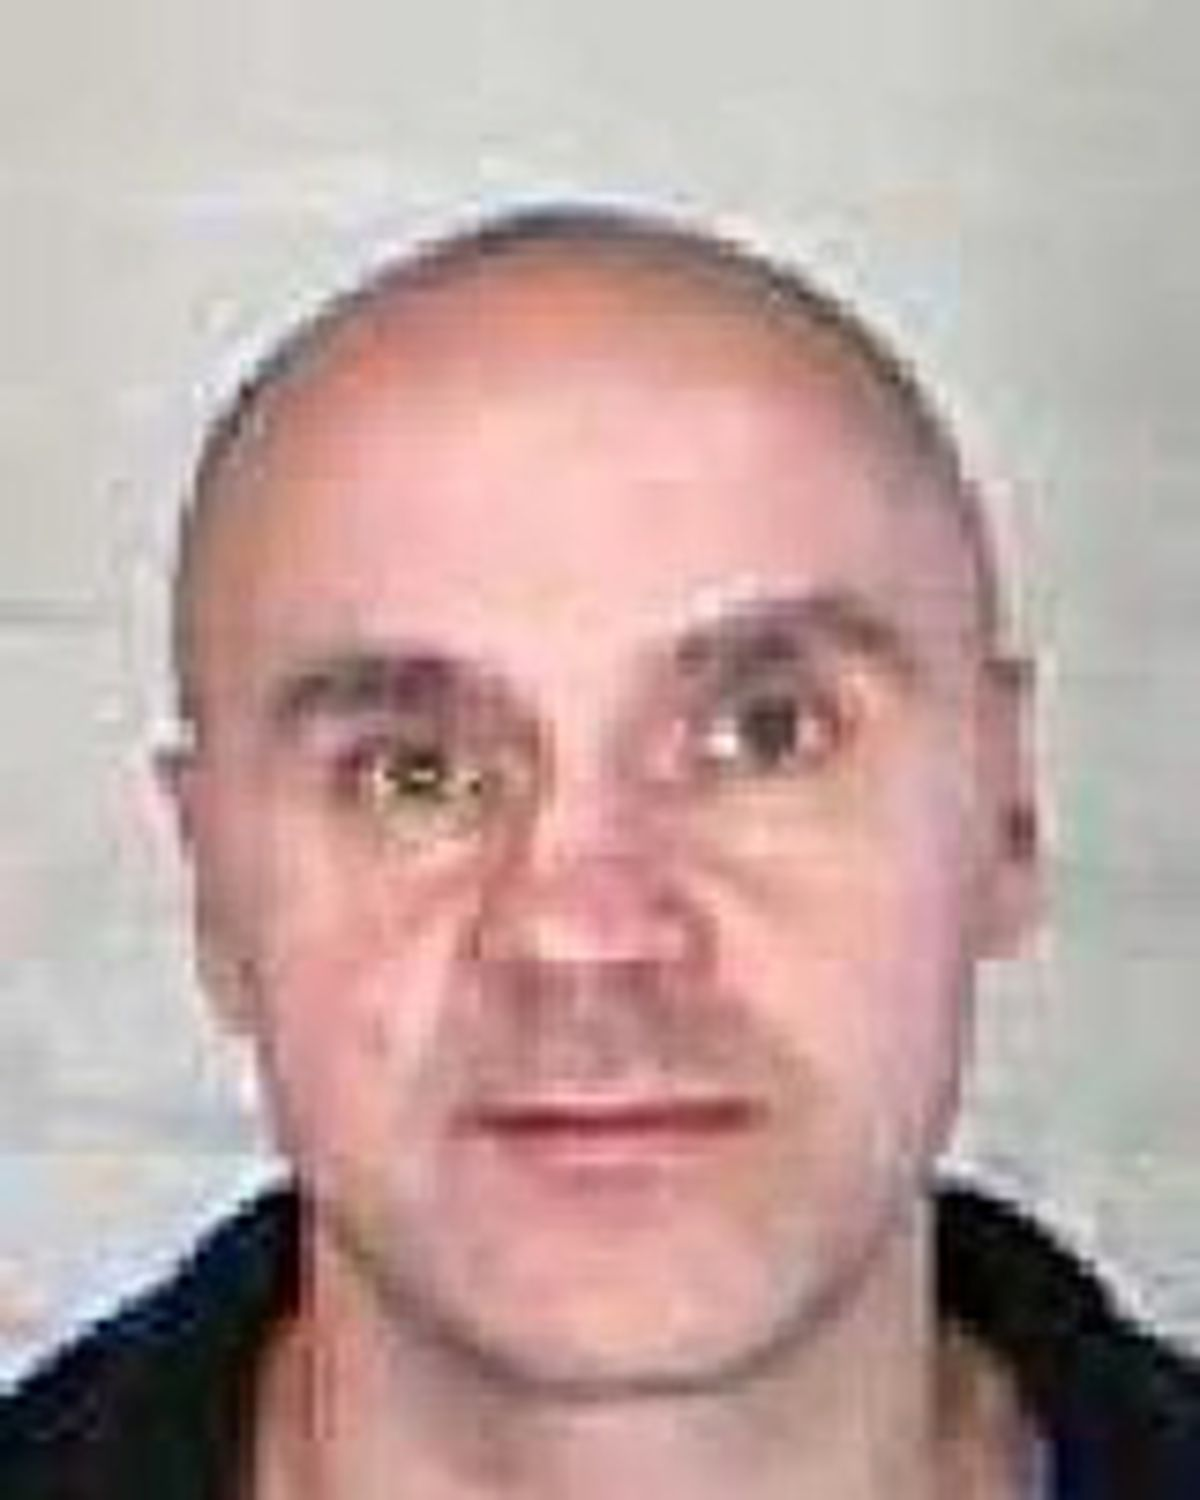 Robber Martin Dawson was caught after Crimewatch appeal